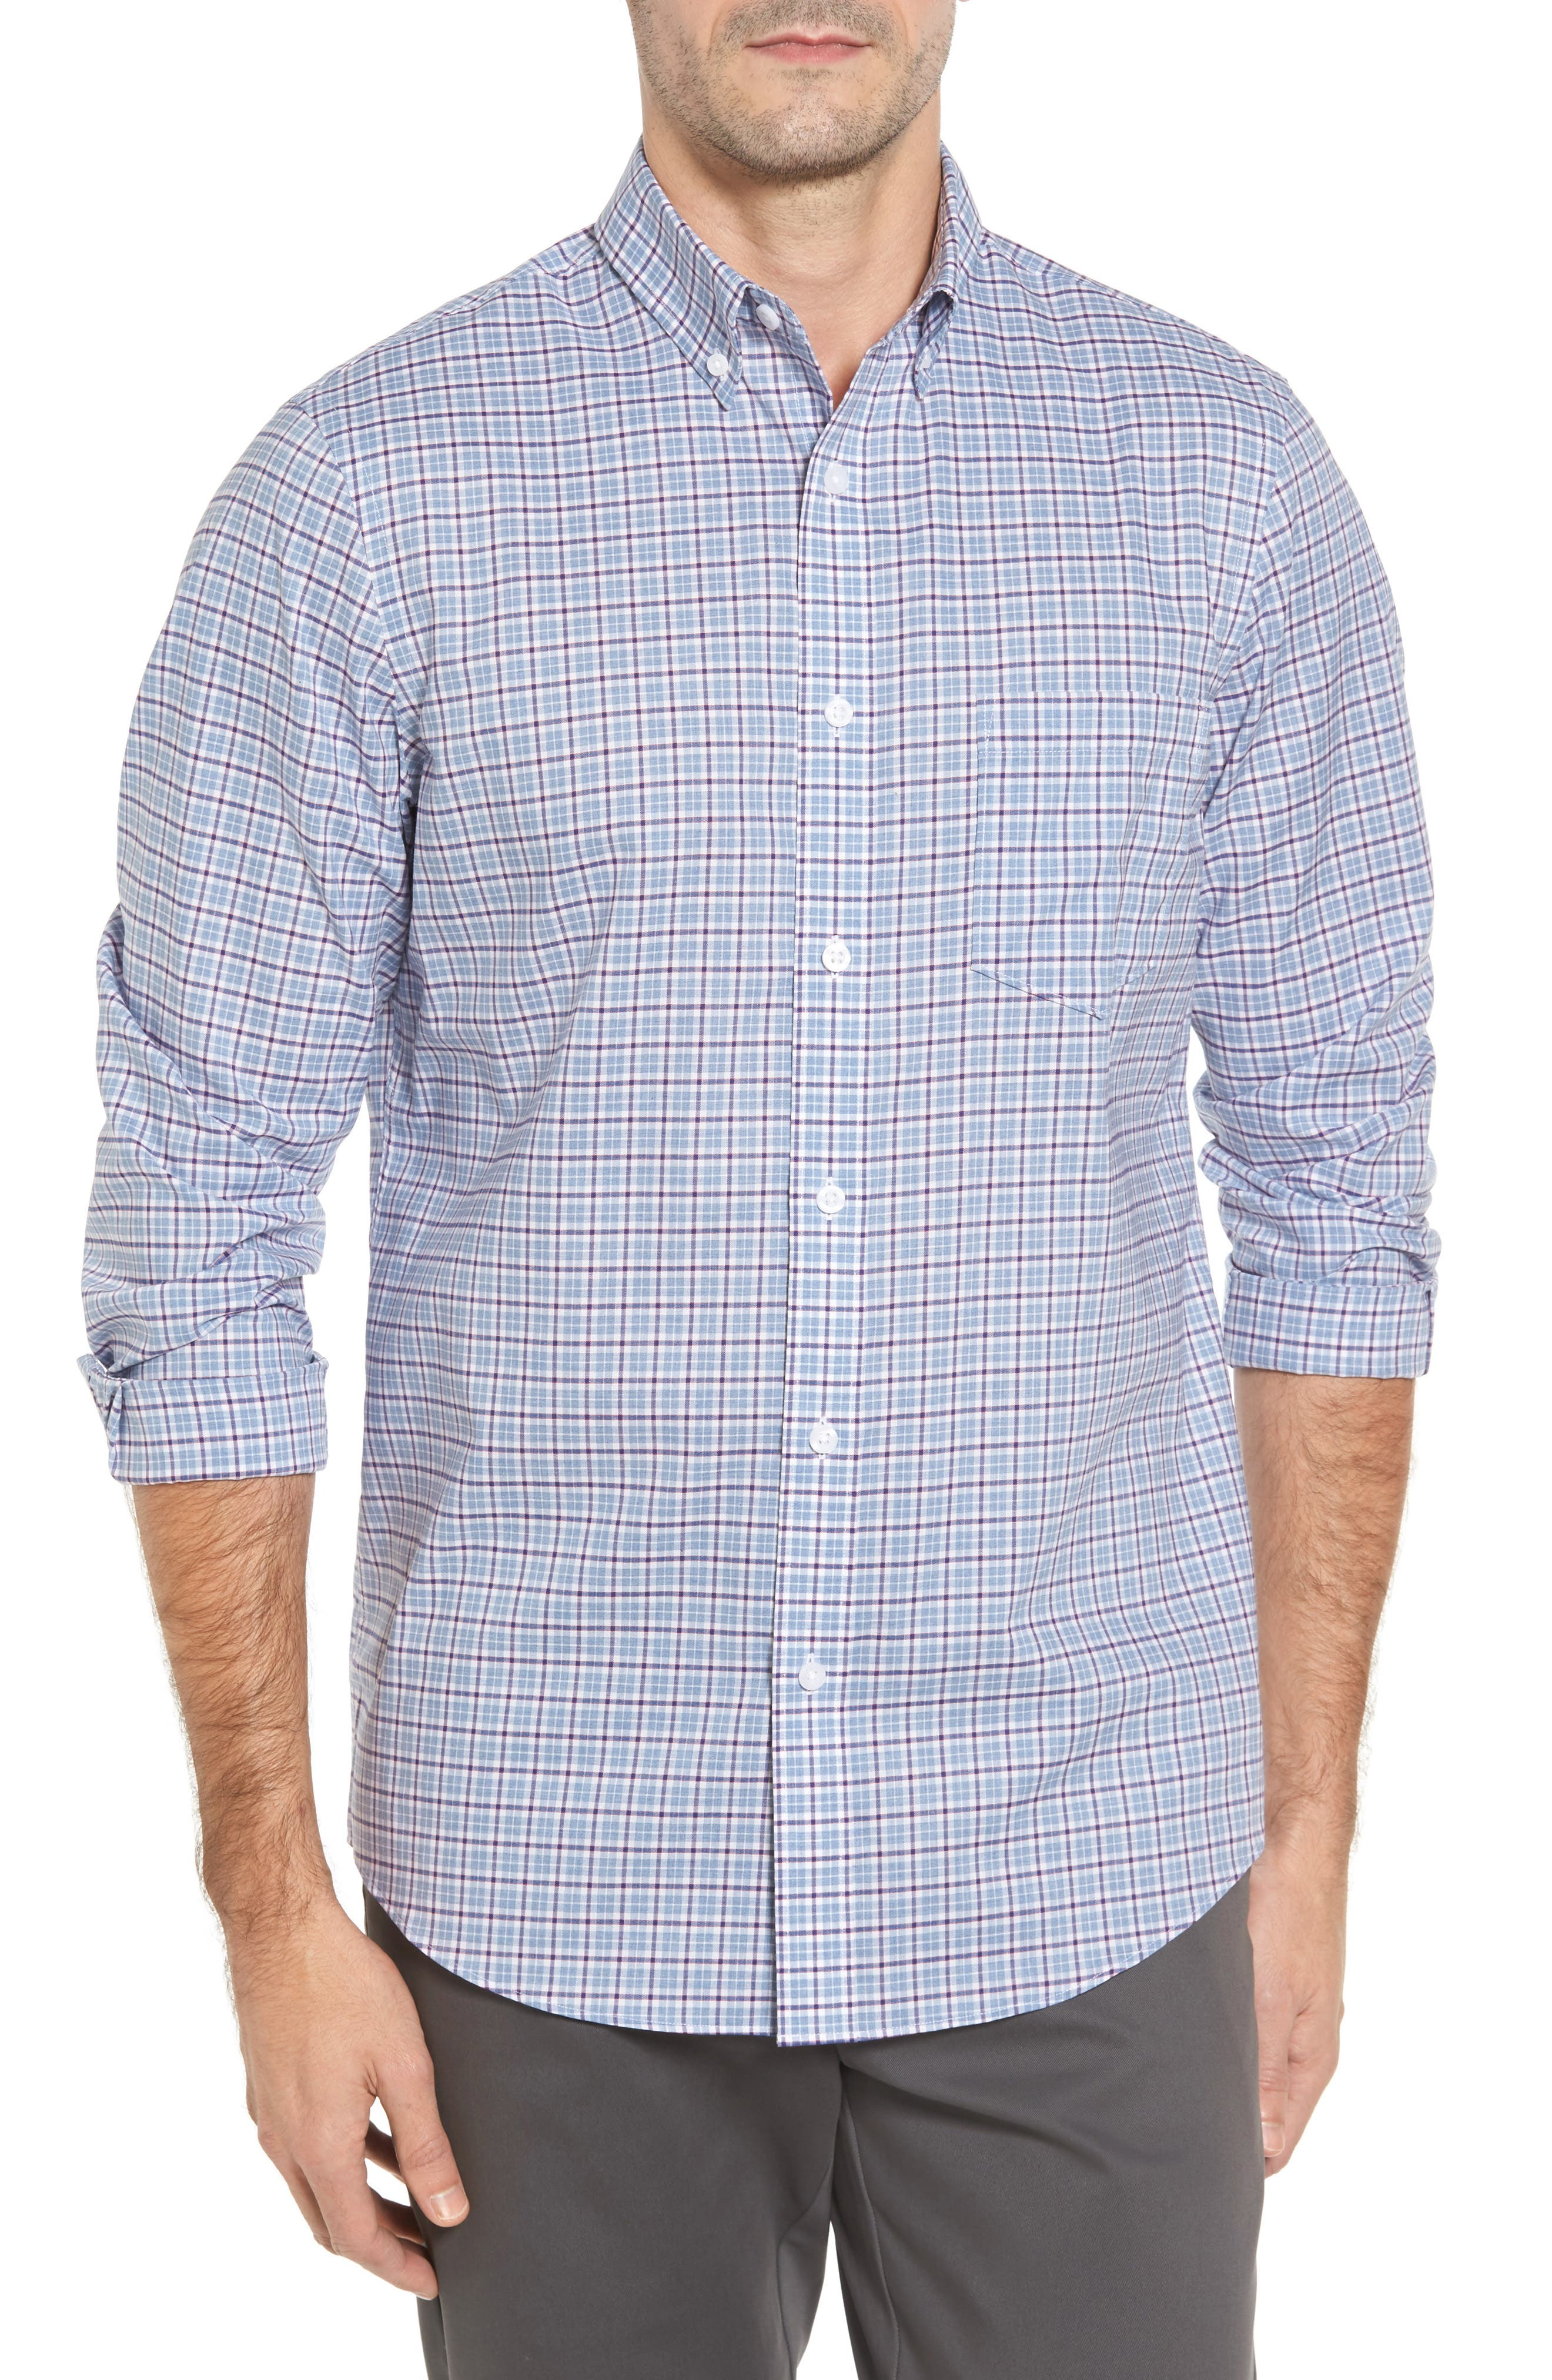 Nordstrom Men's Shop Non-Iron Regular Fit Check Sport Shirt